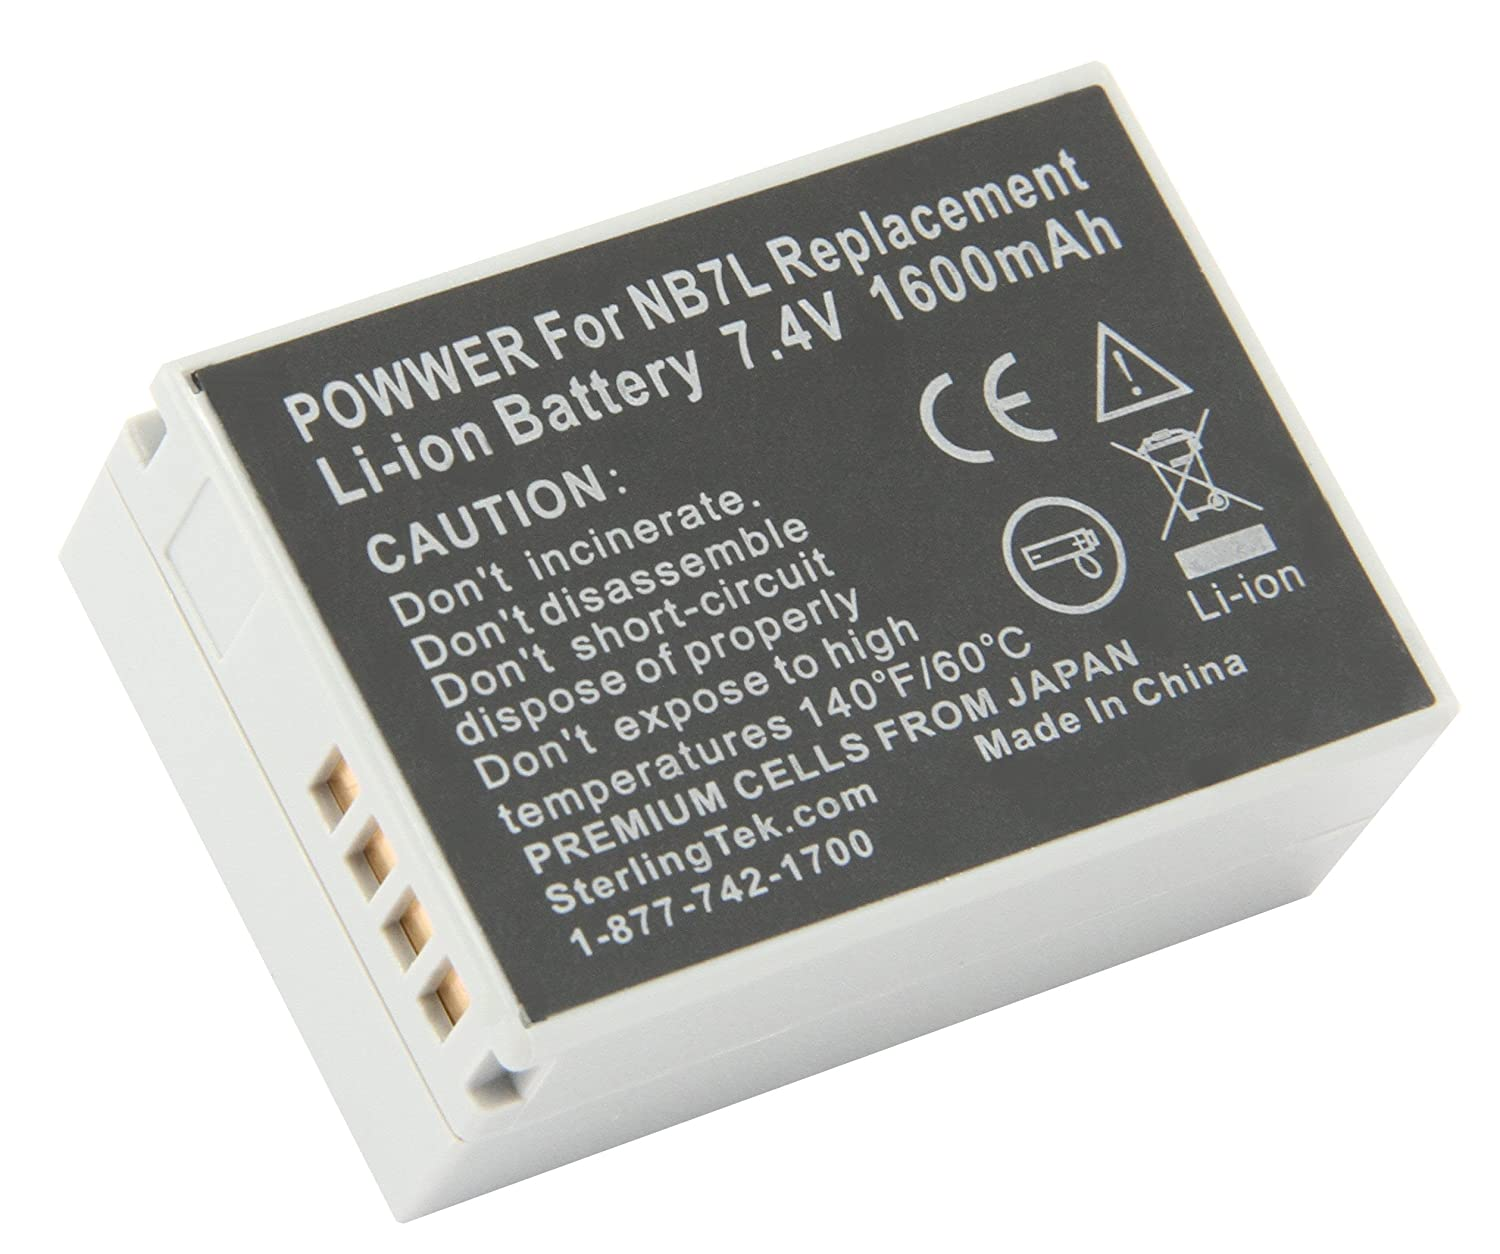 Stks Canon Nb 7l Battery Pack 1600mah For Cell Phone Charger Circuit Powershot Sx30 Is G12 Sx30is G11 G10 Cannon Cb 2lz Nb7l Digital Camera Batteries